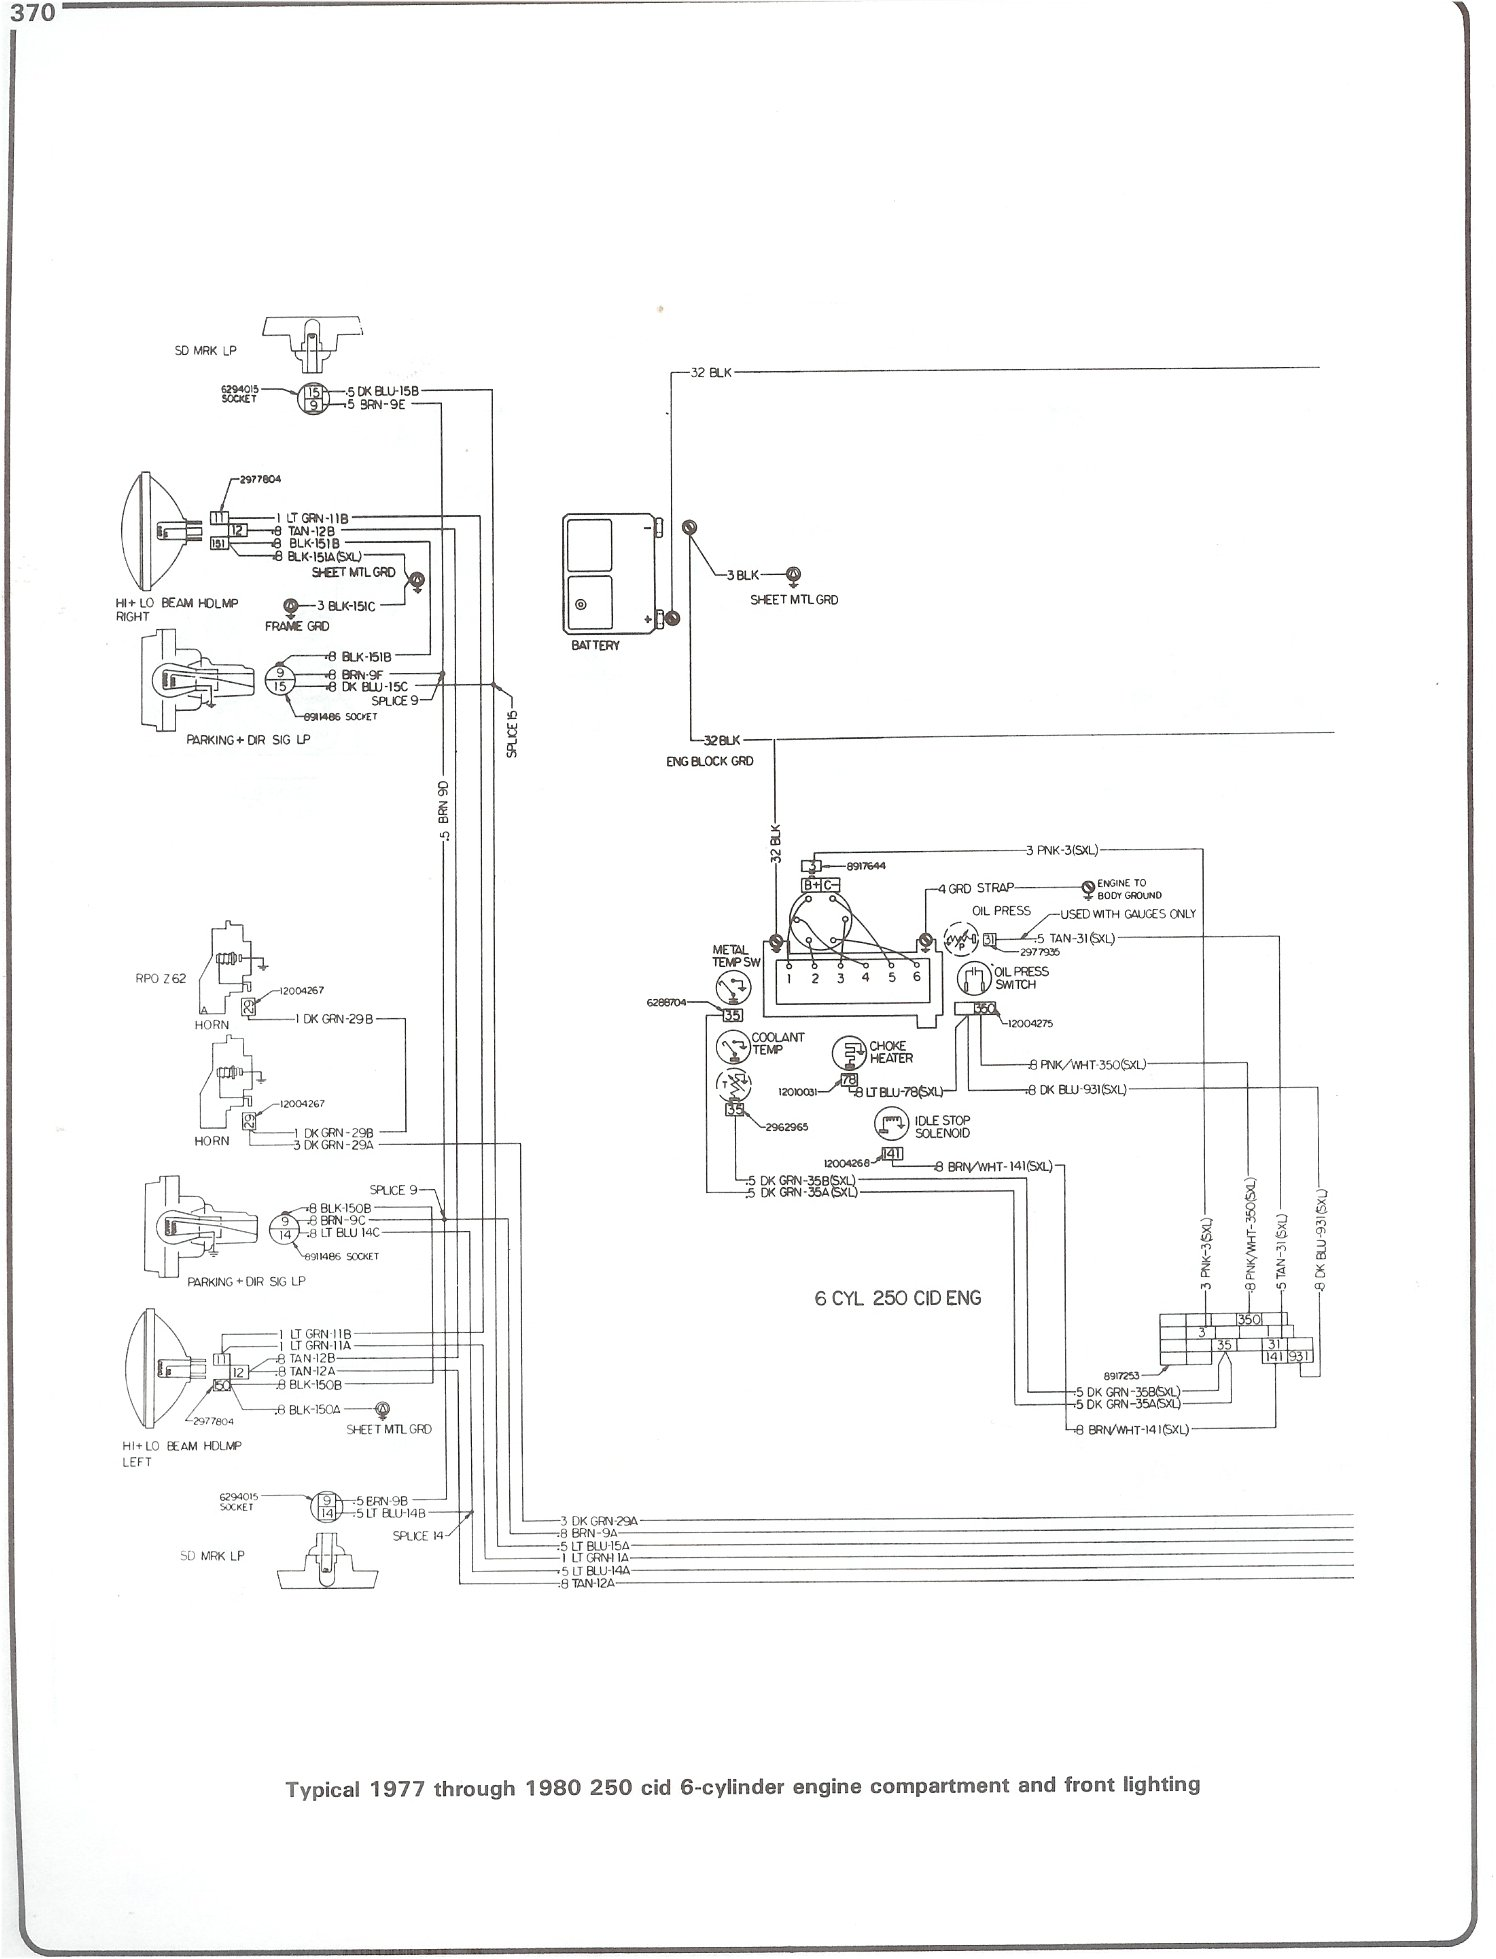 C0c5 1985 Chevy S10 Steering Column Wiring Diagram Wiring Resources